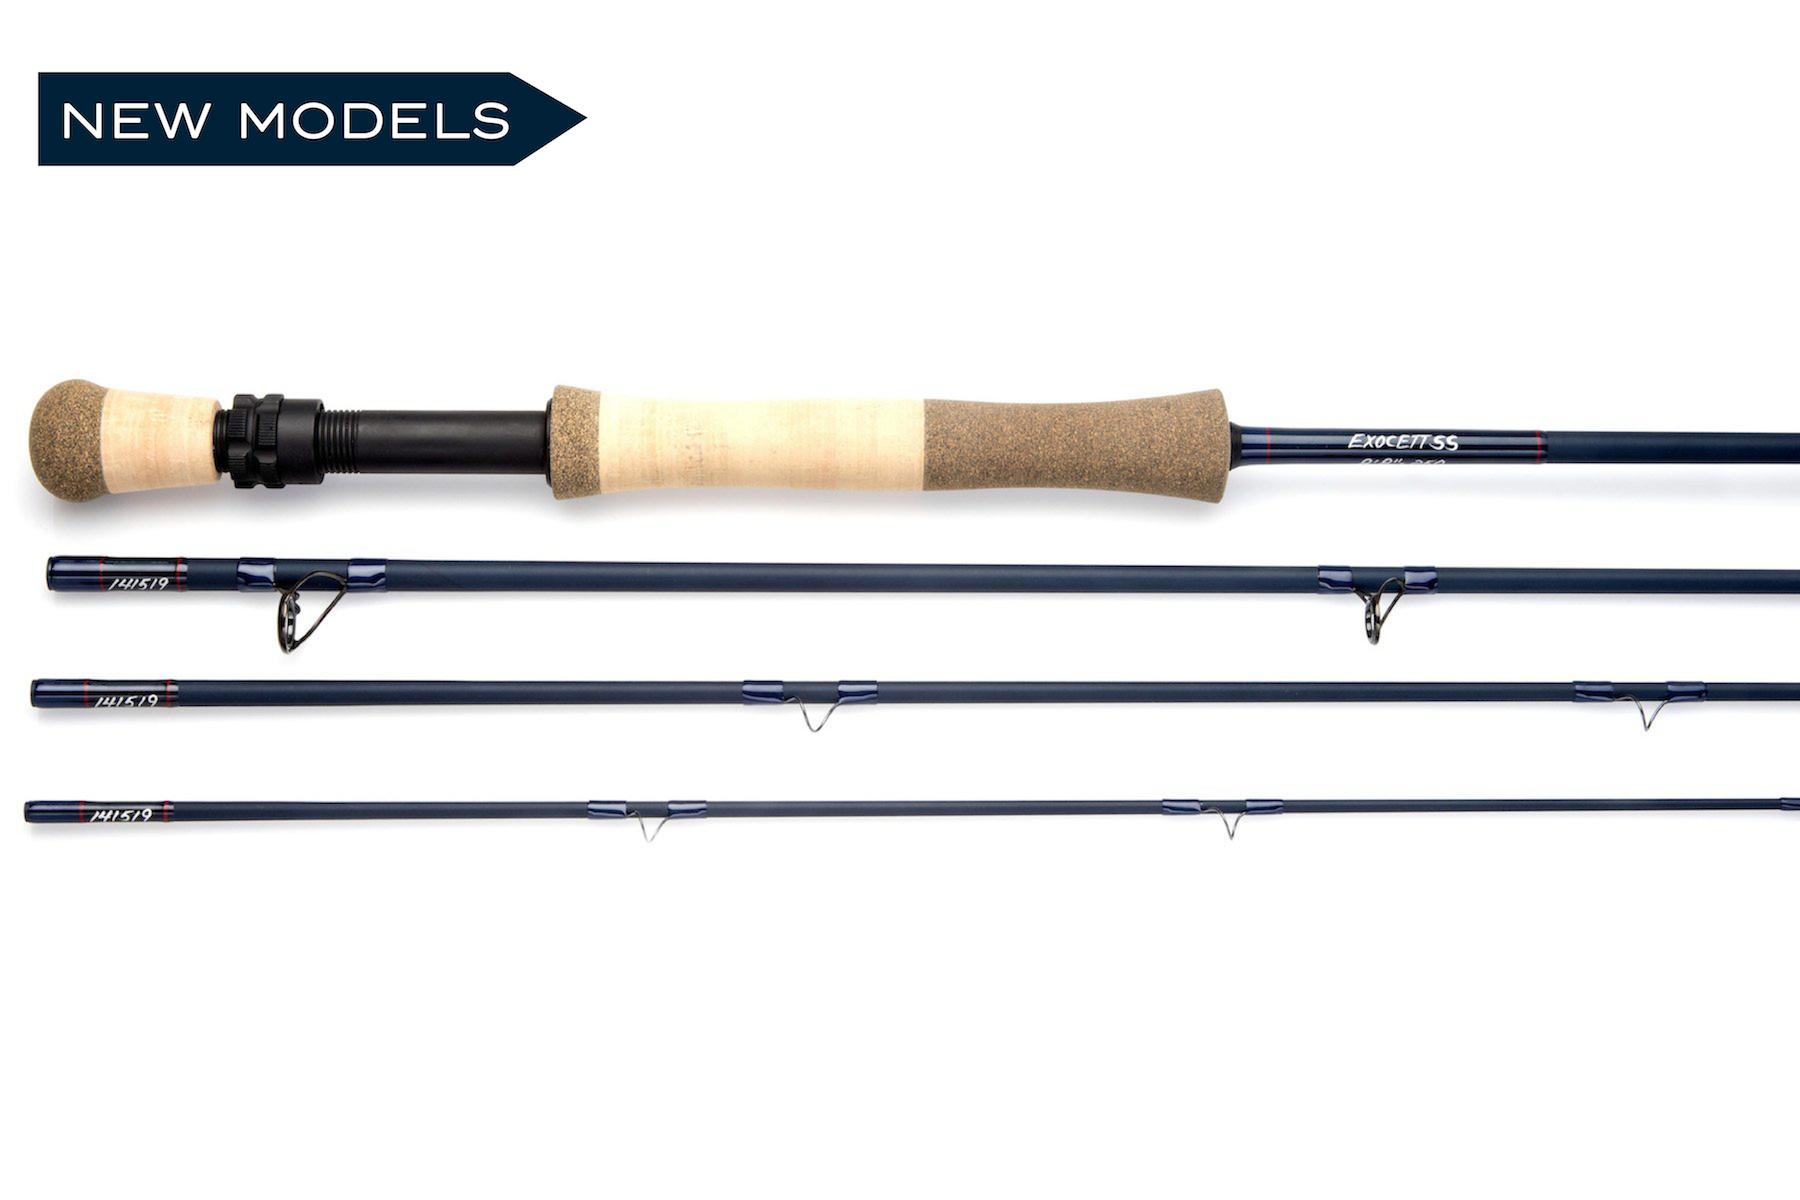 Thomas & Thomas Exocett SS Saltwater Fly Rods - NEW Models!